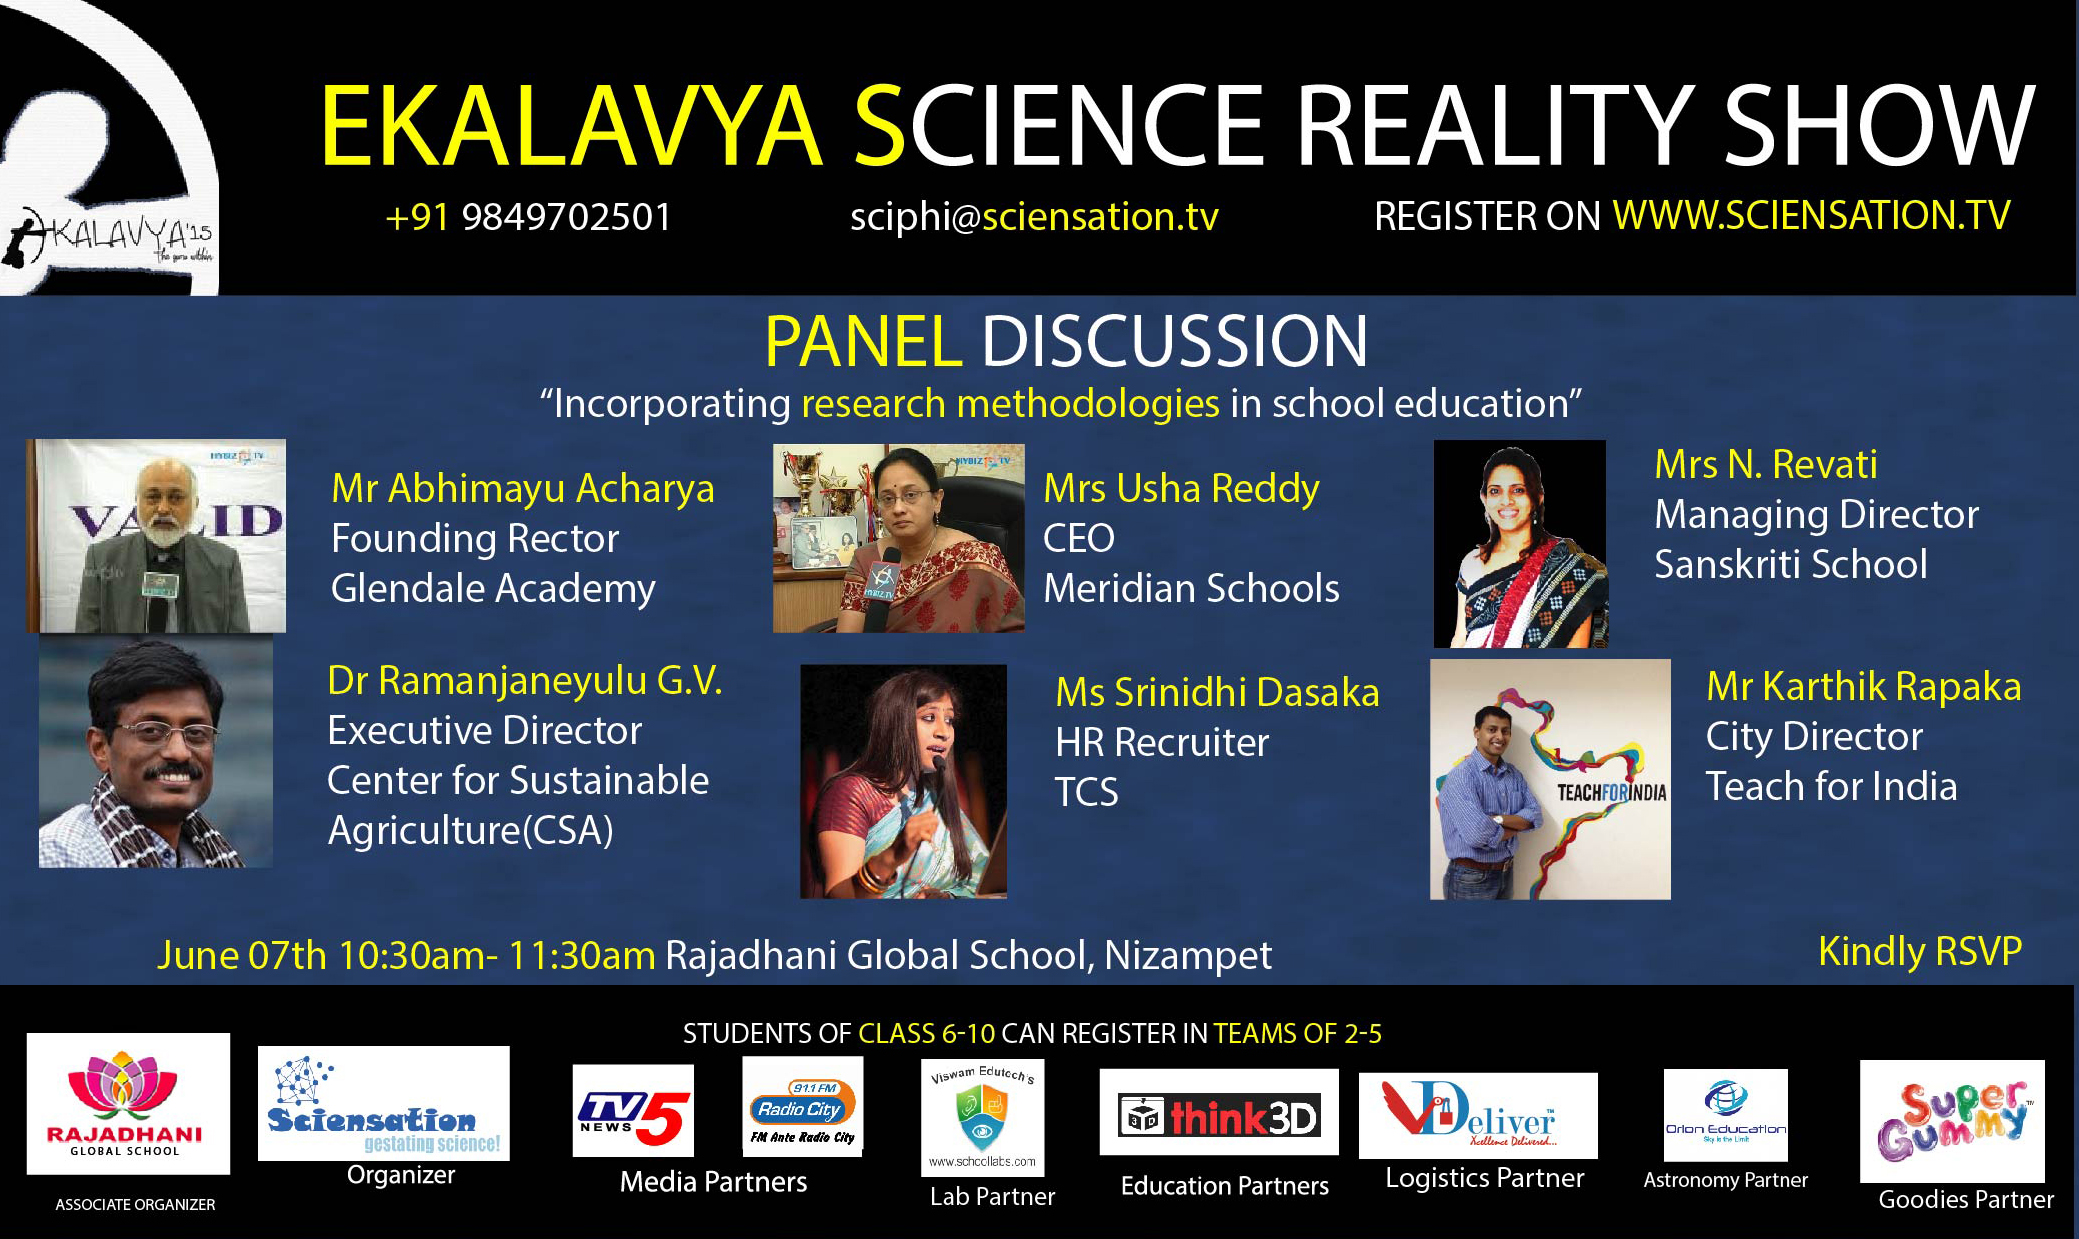 Ekalavya Science Reality Show: Panel Discussion